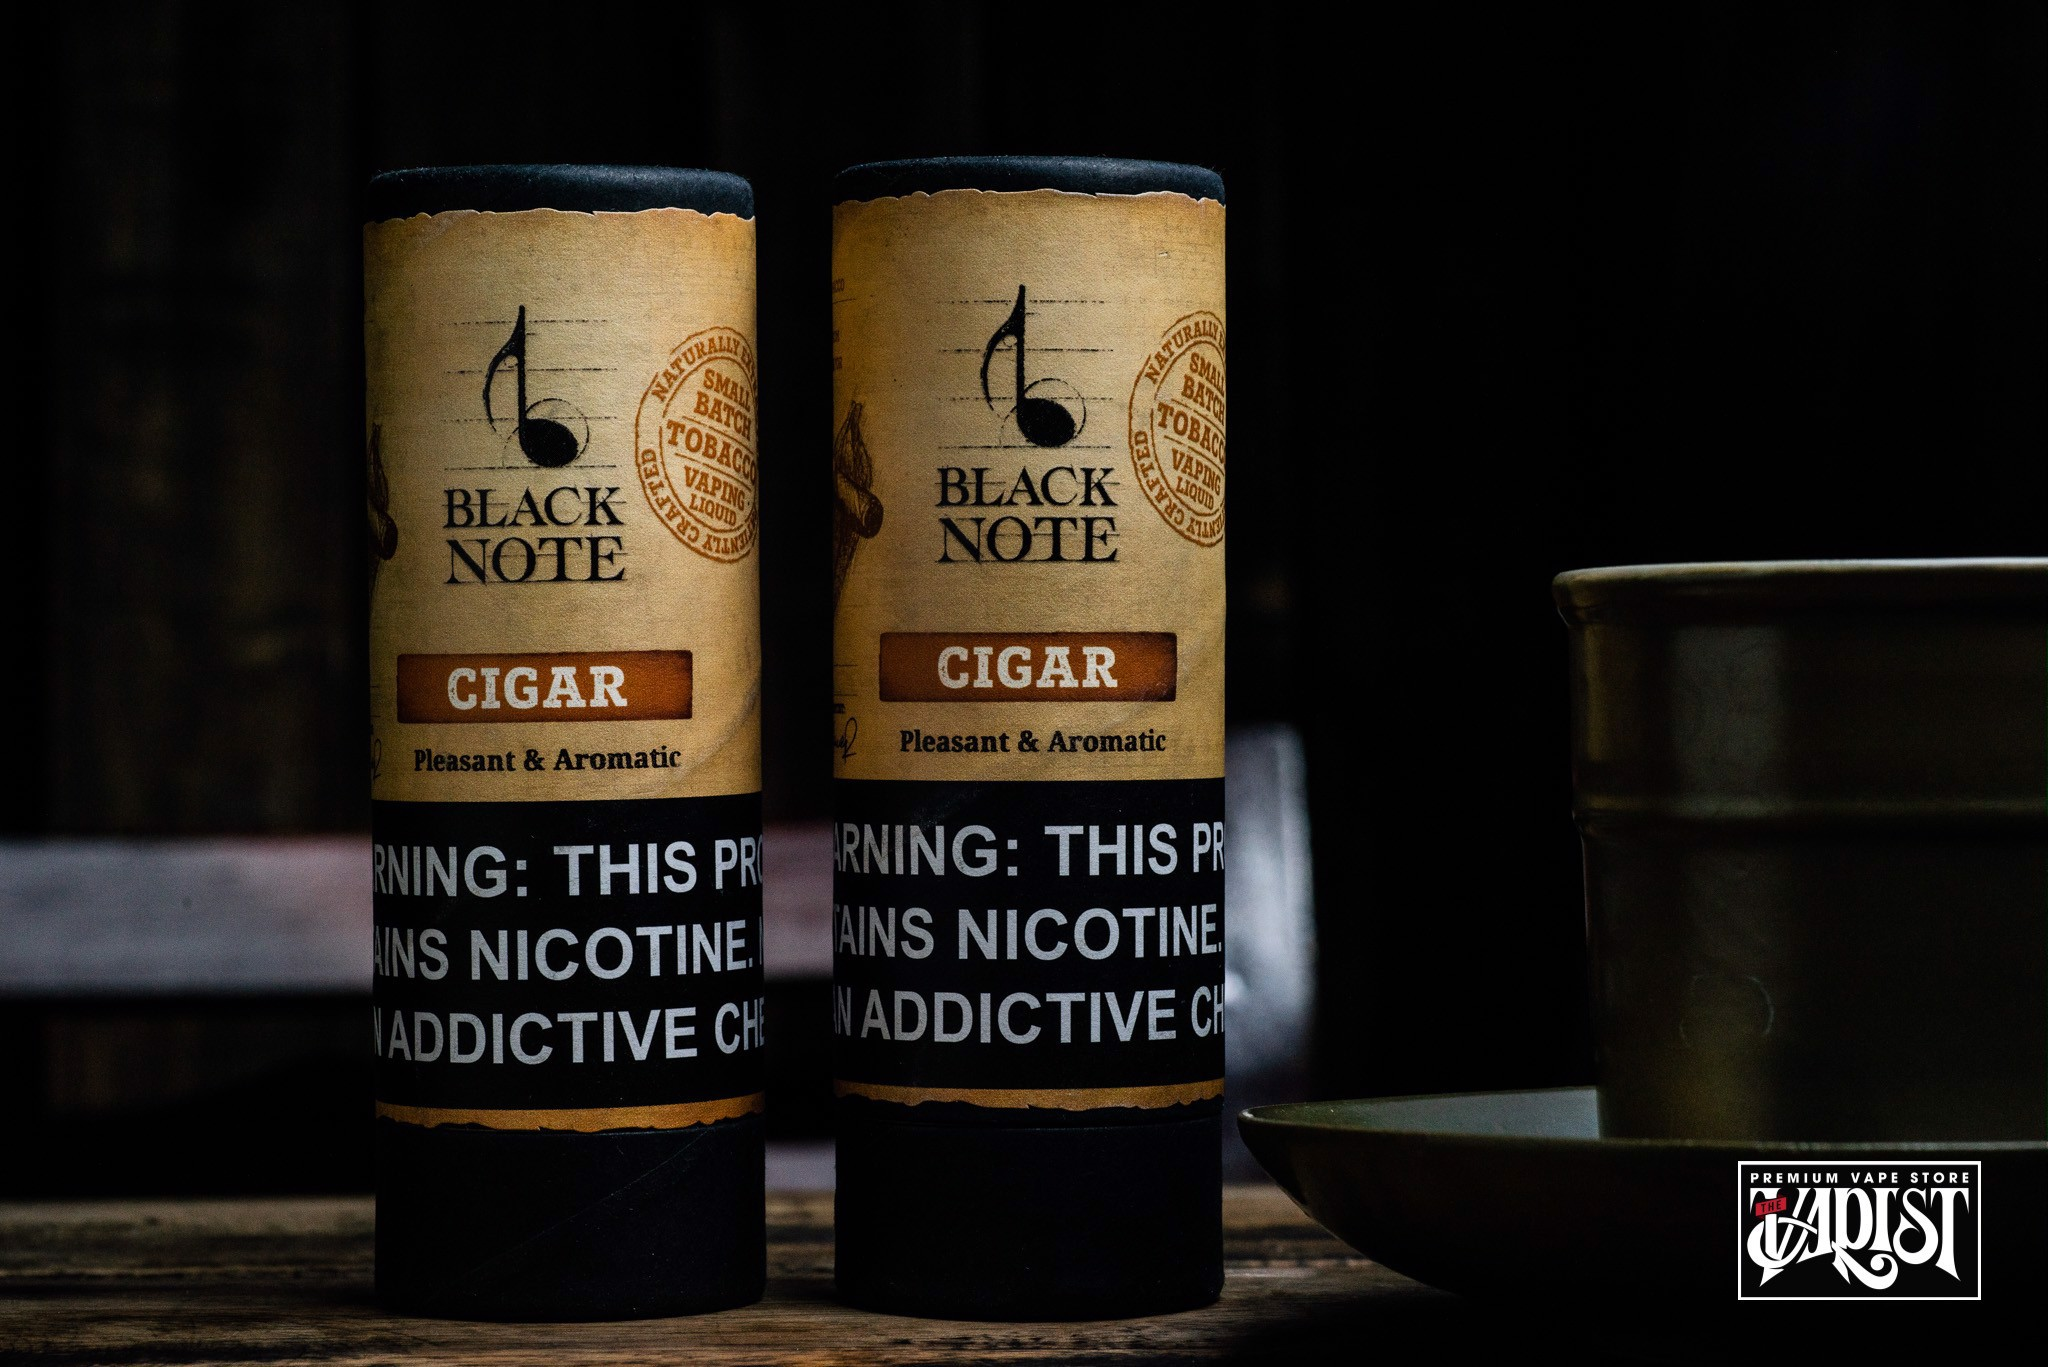 Black Note Concerto (Cigar)